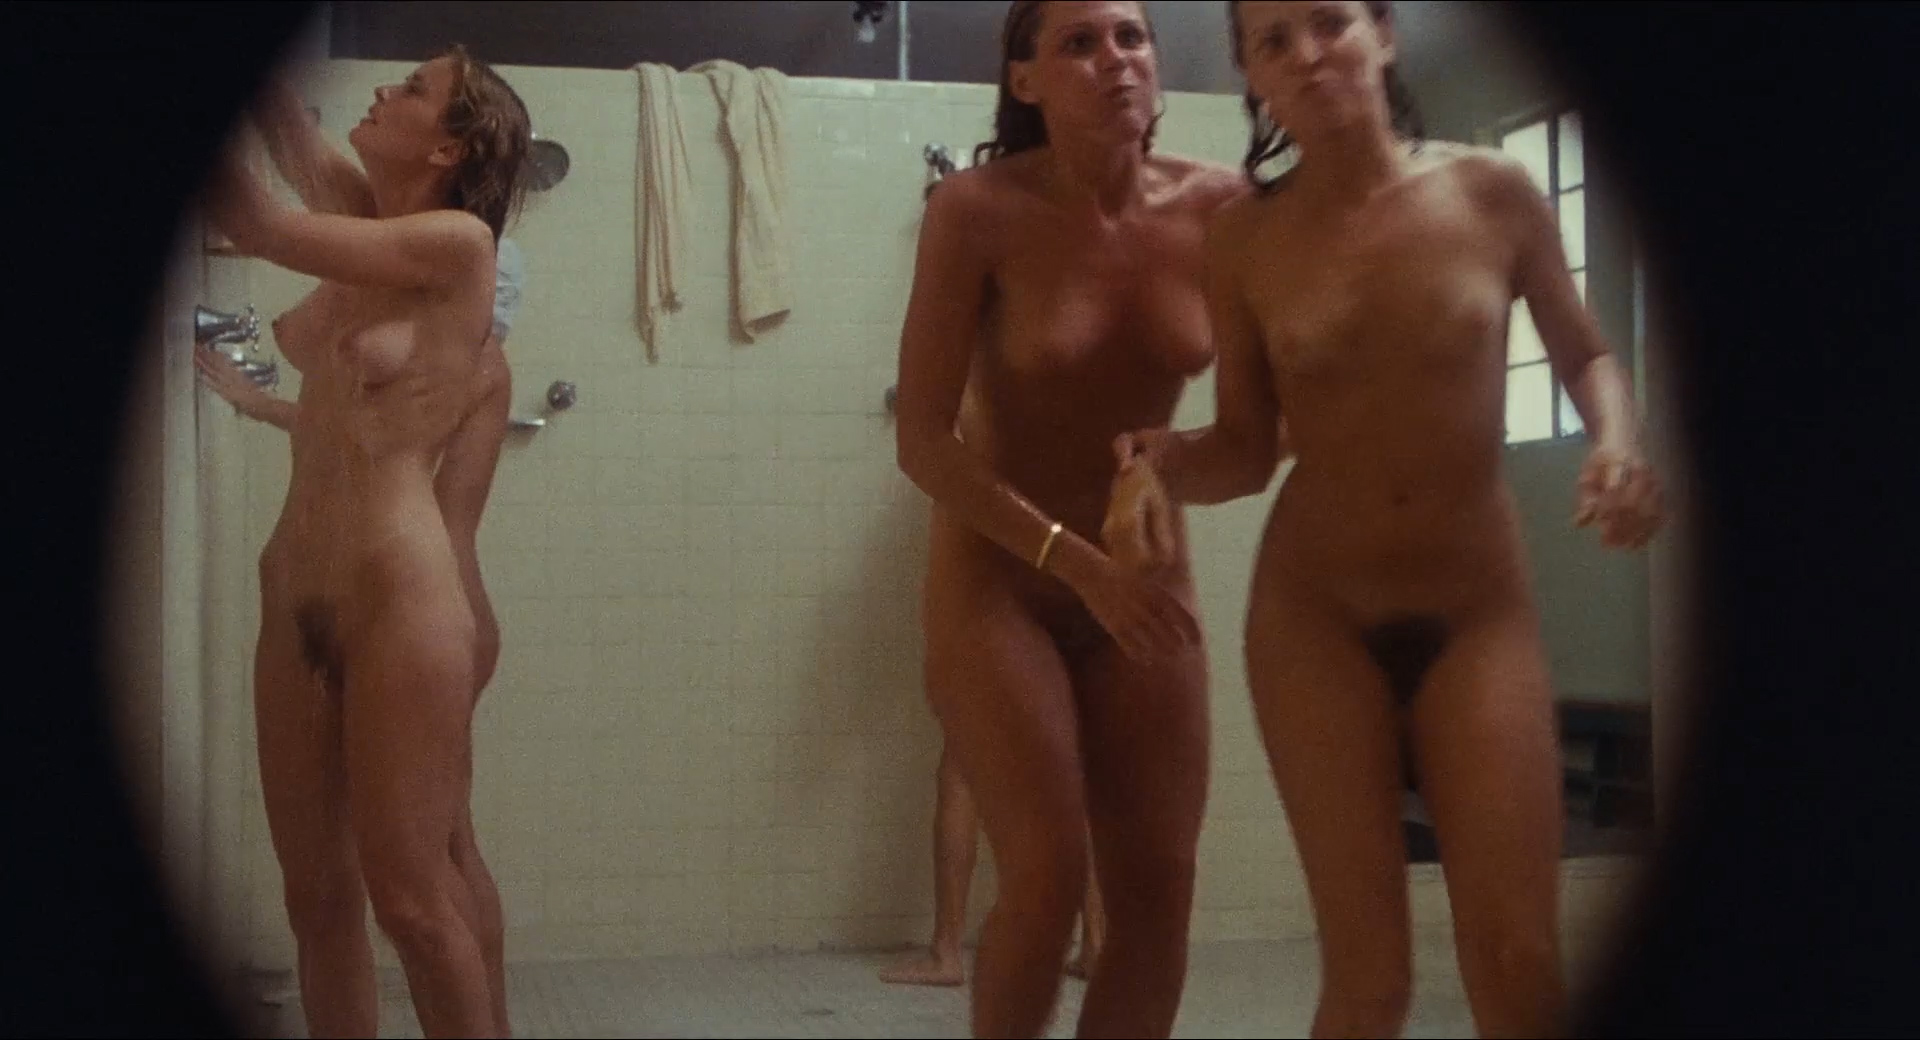 Kim cattrall nude, topless pictures, playboy photos, sex scene uncensored